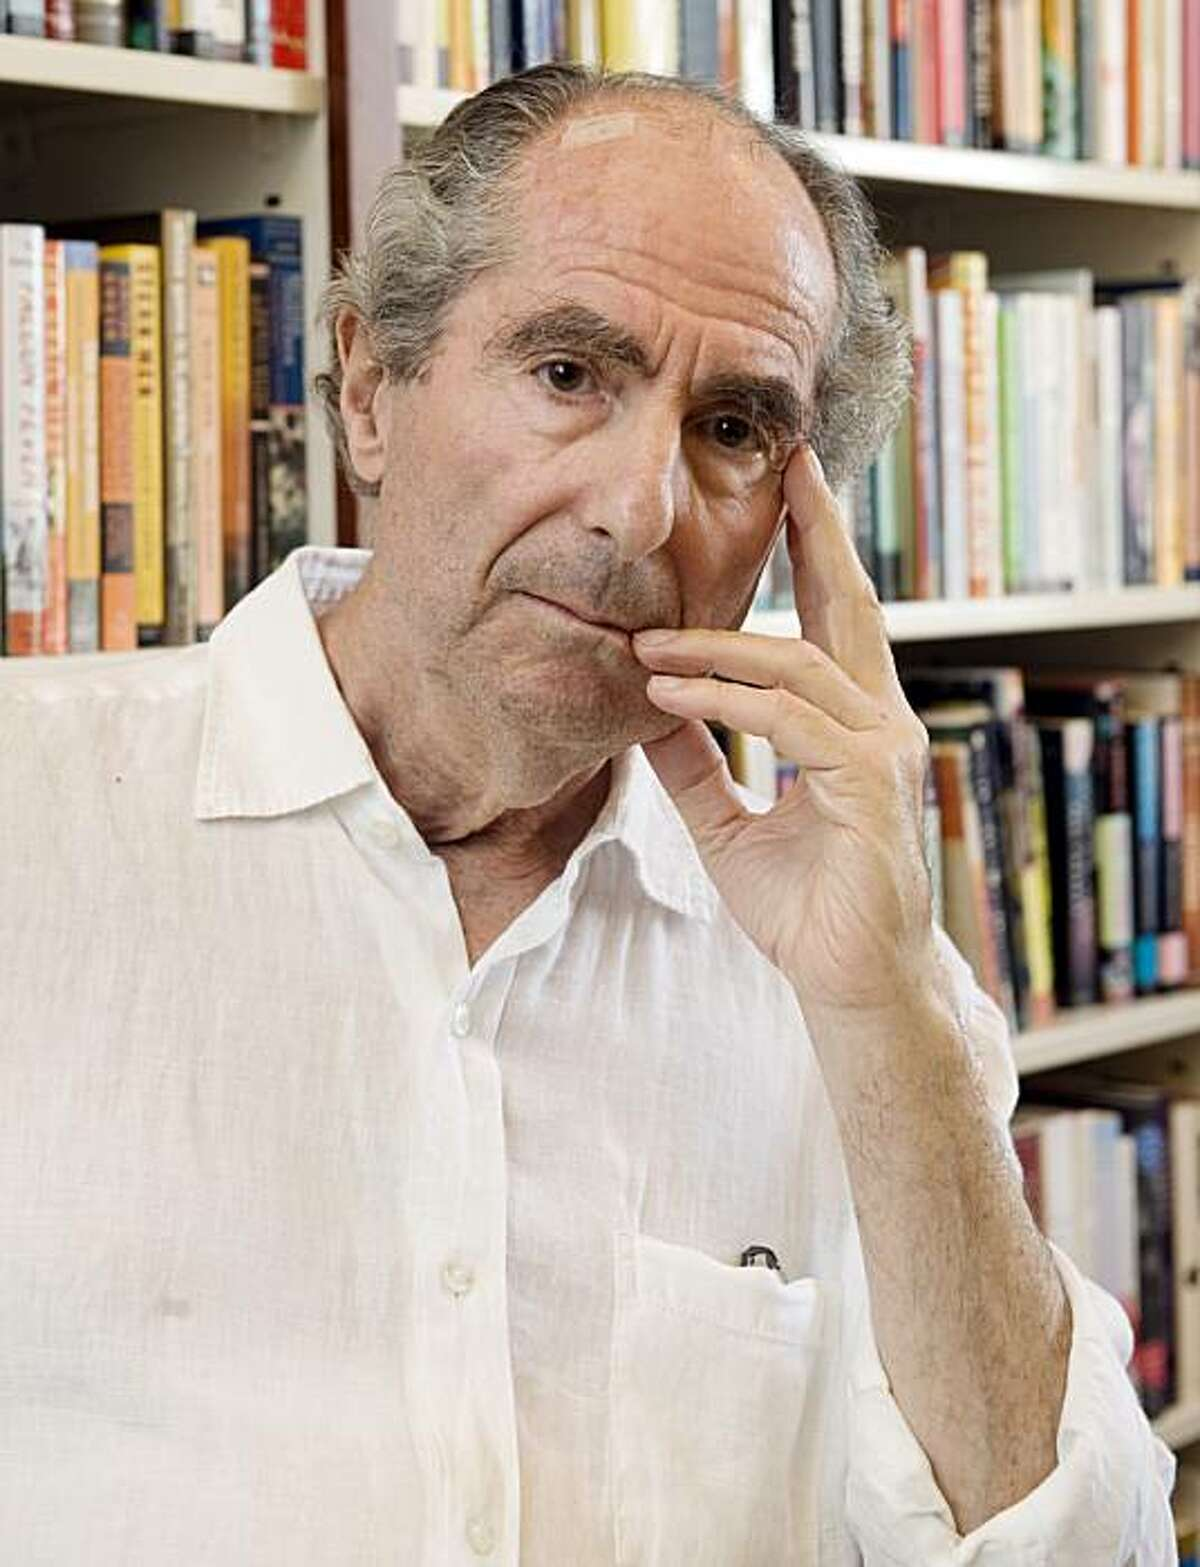 Philip Roth in the offices of his publisher Houghton Mifflin, in New York, Sept. 8, 2008.